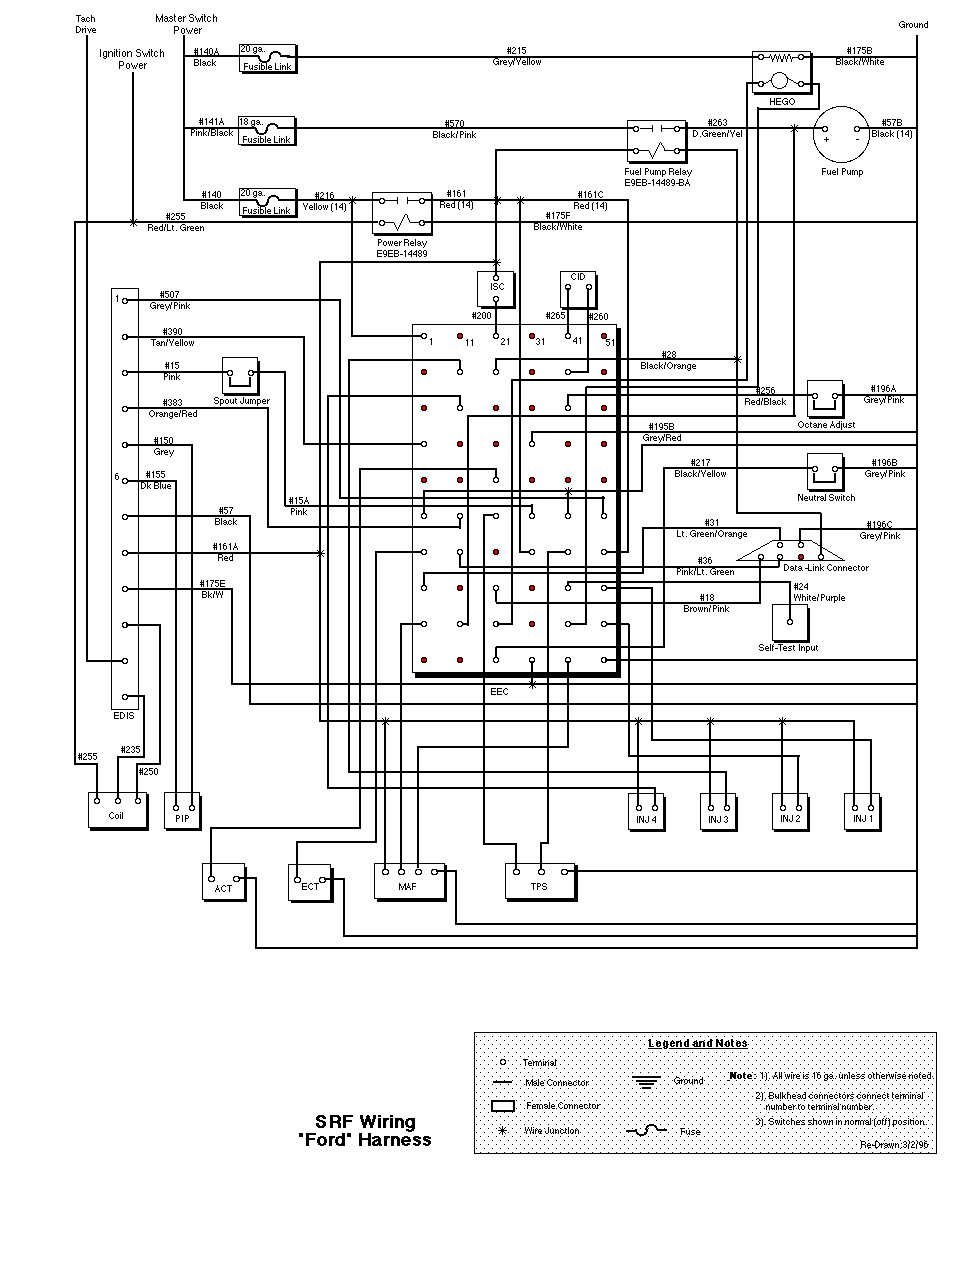 Ford Lts 9000 Wire Diagram 1972 Truck Manual Guide Wiring 1995 L9000 Schematic Box Rh 2 Pfotenpower Ev De